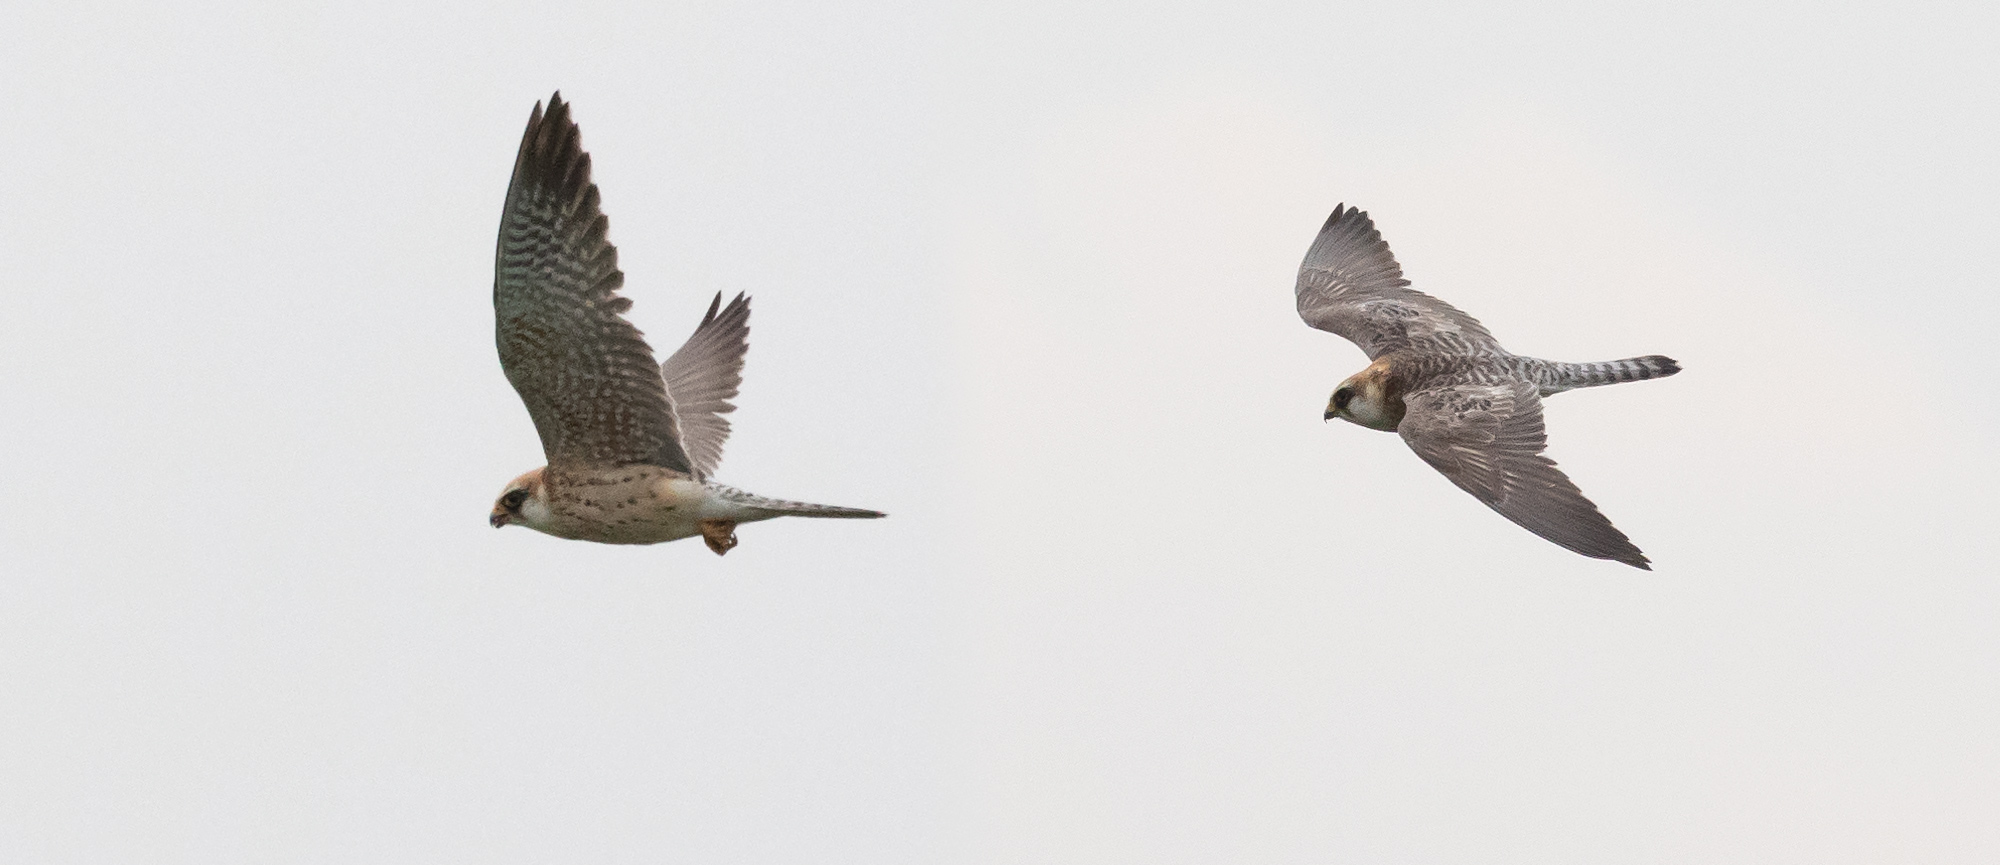 Juvenile flight feathers, some moulted greyish and barred upperwing coverts and tail feathers, barred underwing coverts and still an entirely female-type body plumage nail this as a 2CY female Red-footed Falcon.